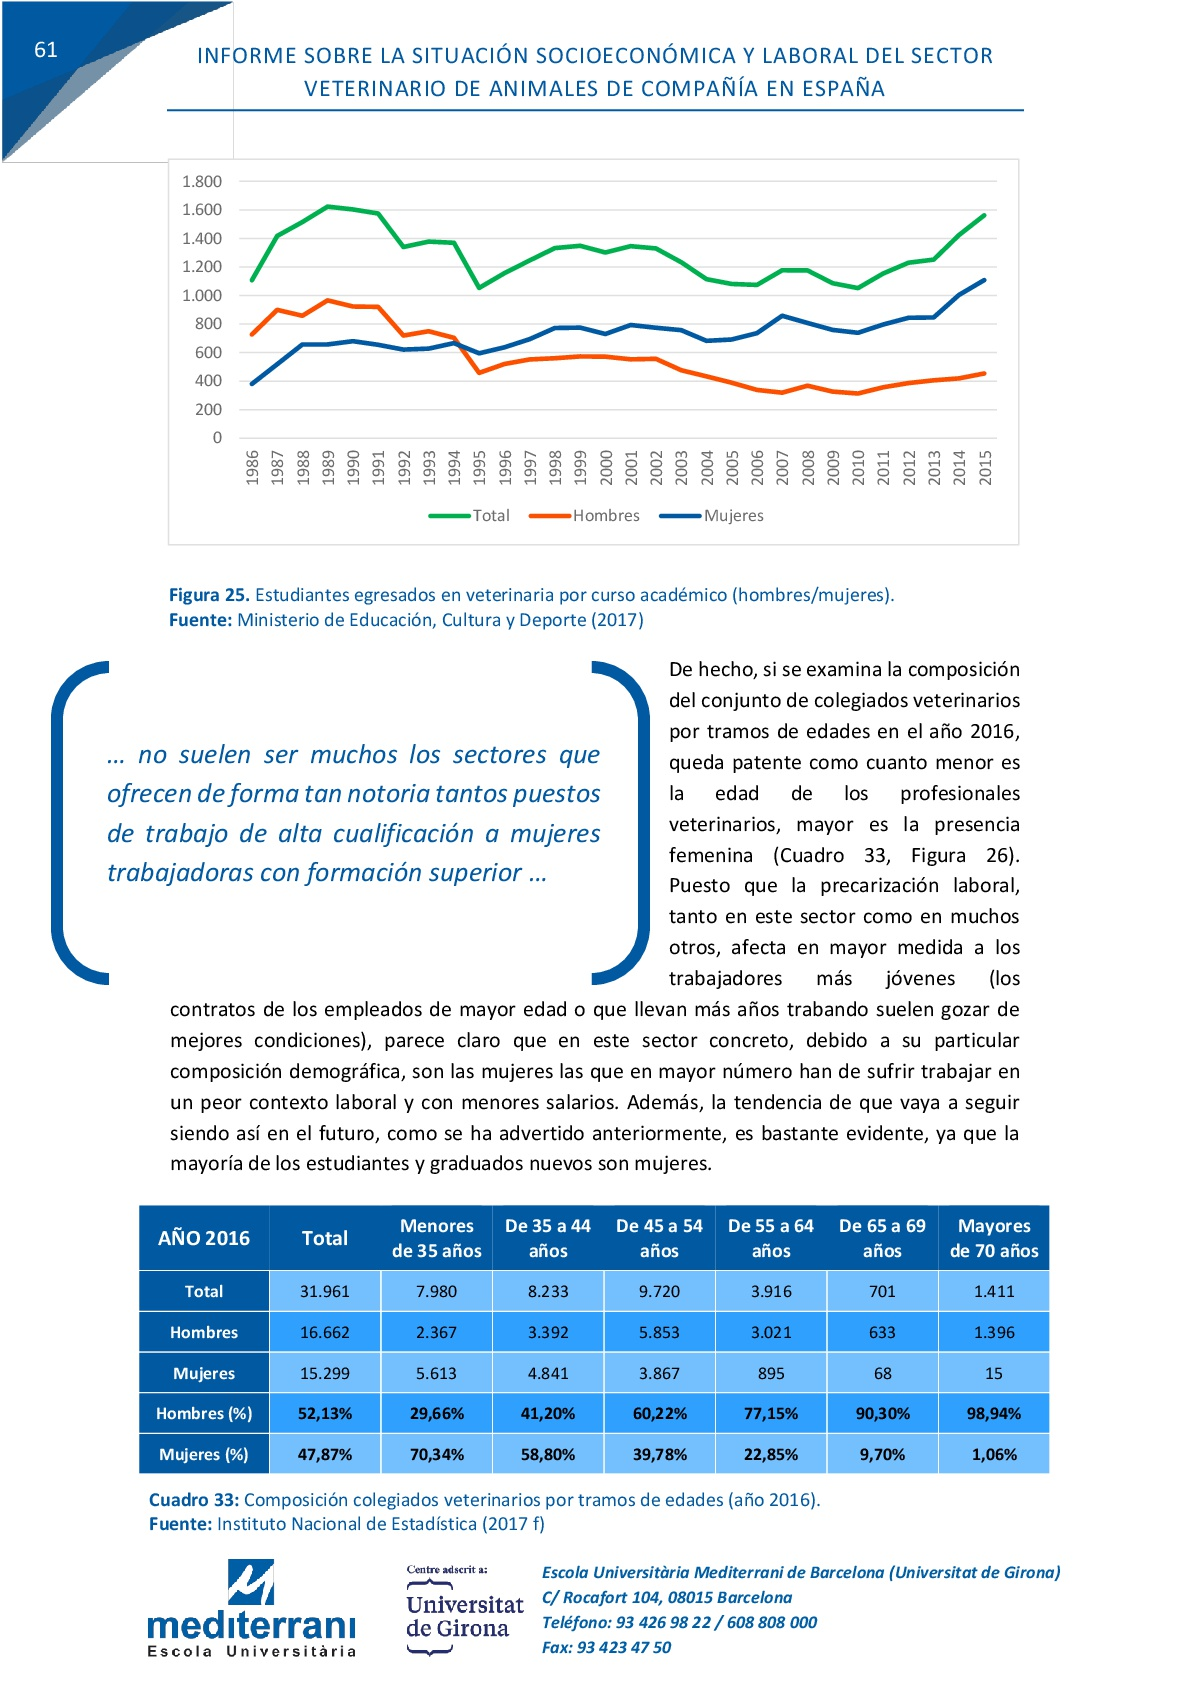 Informe-Veterinario-2017-+-informe-legal-2015-(3)-066